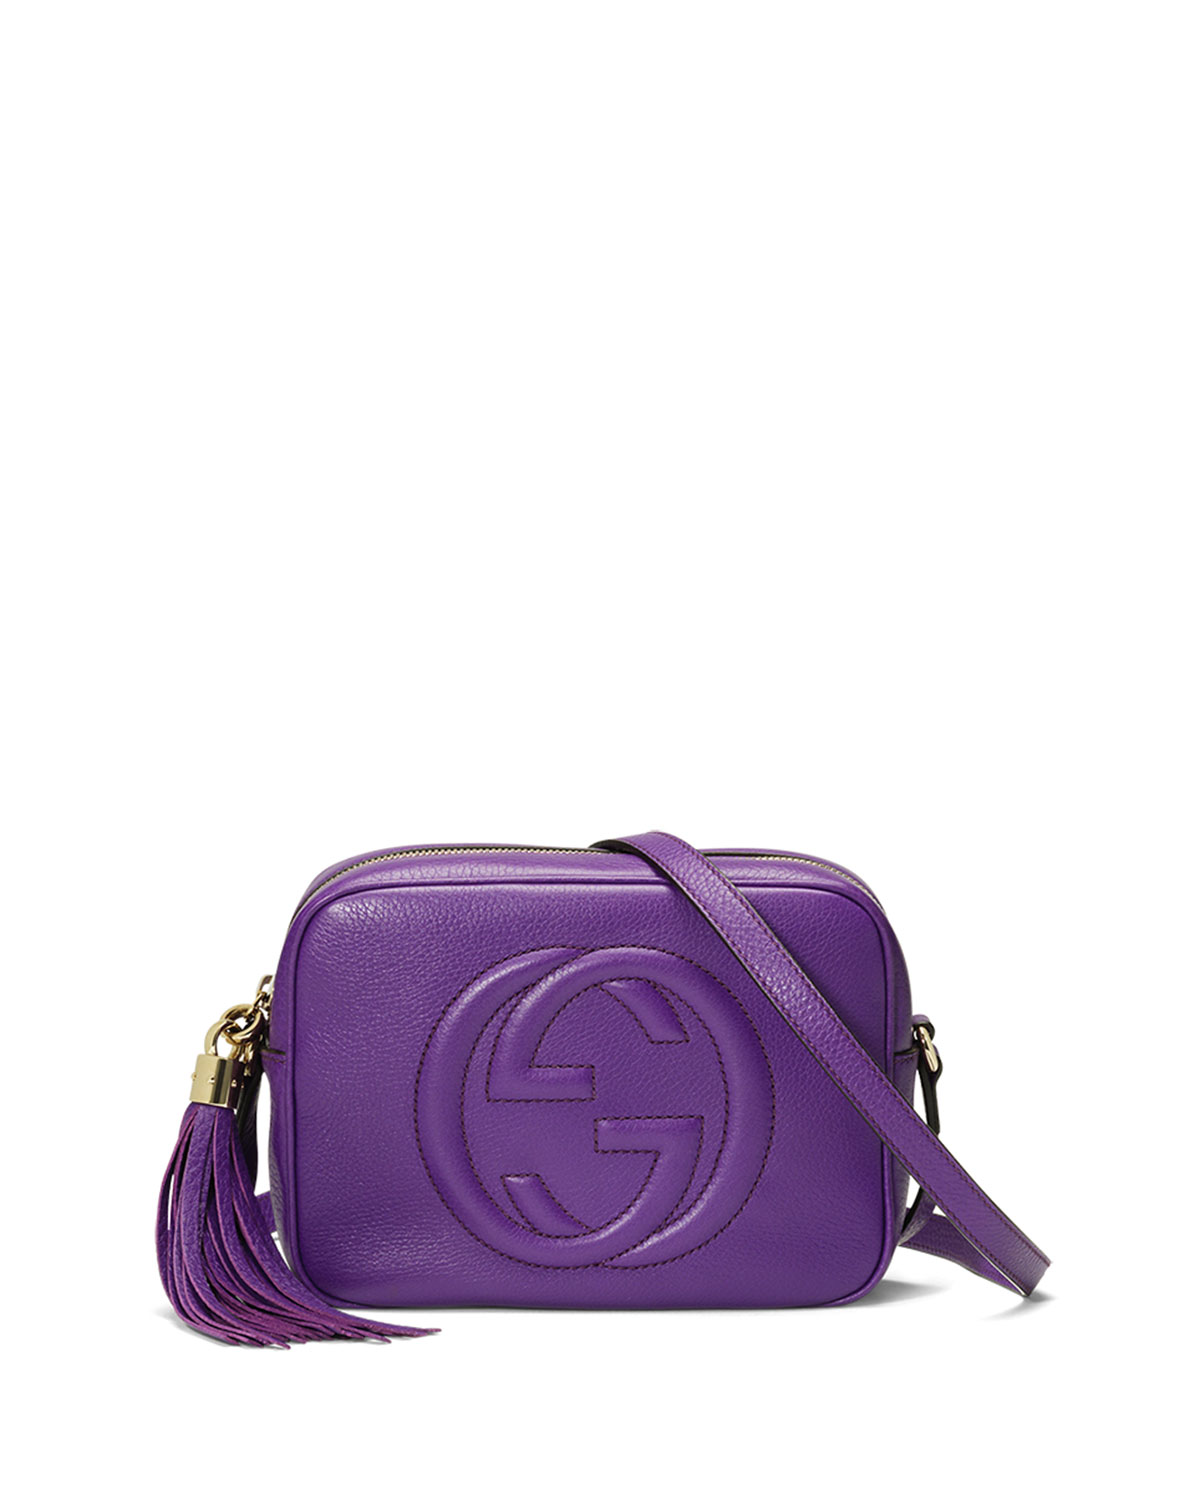 b24a4b5365 Gucci Soho Small Camera Crossbody Bag